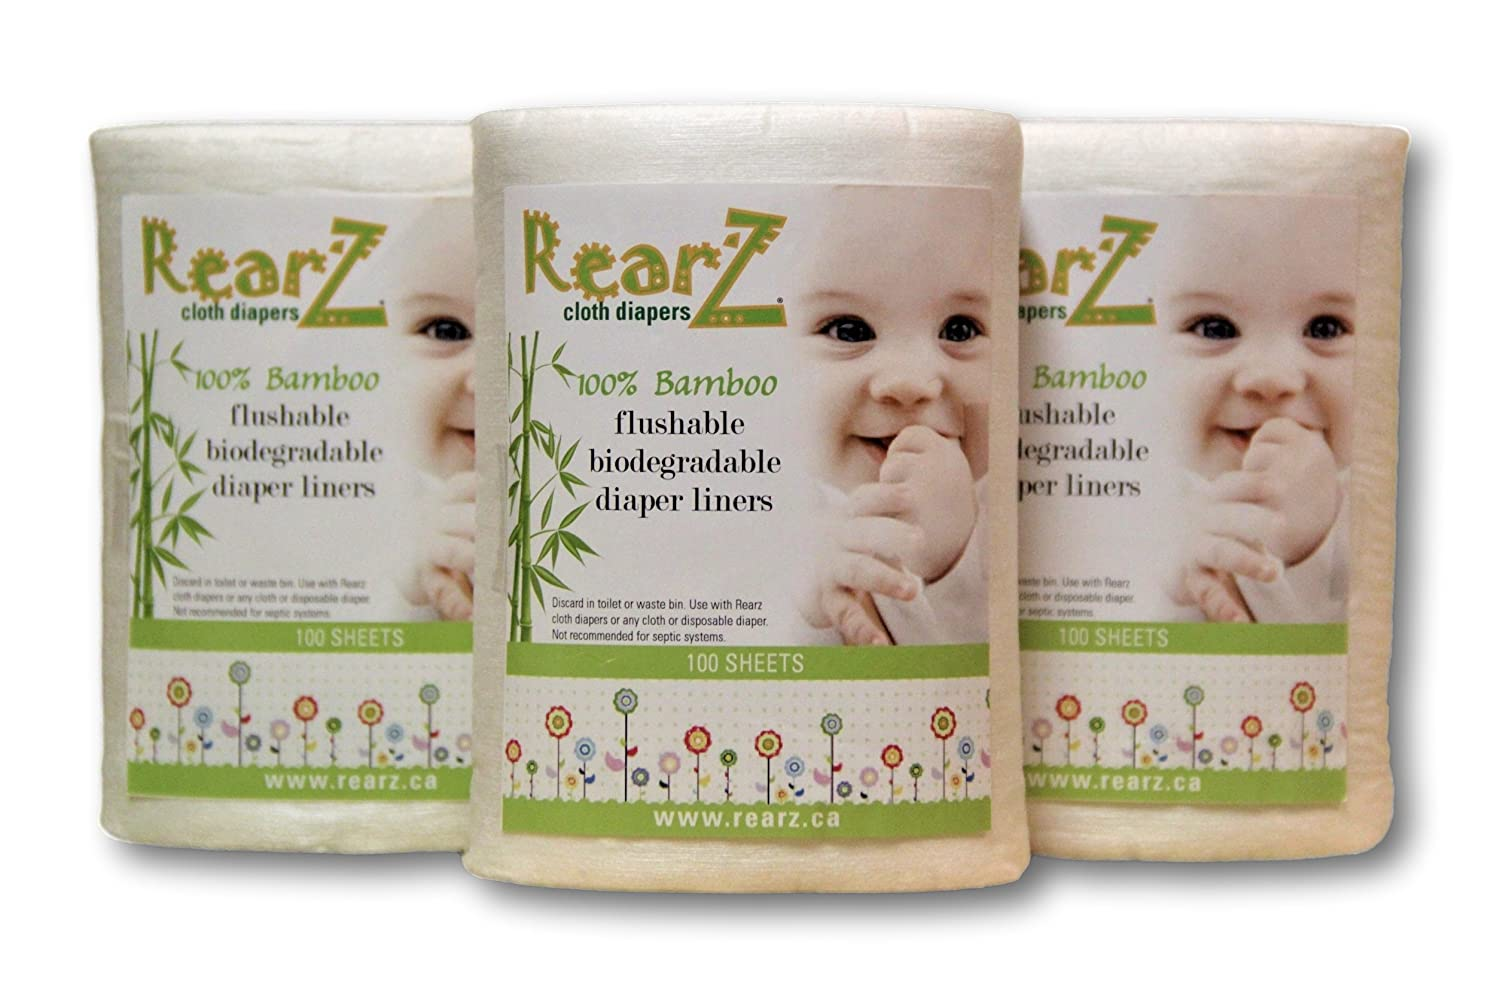 Rearz - All Natural, 100% Bamboo Diaper Liners (100 Sheets) (3 Pack)